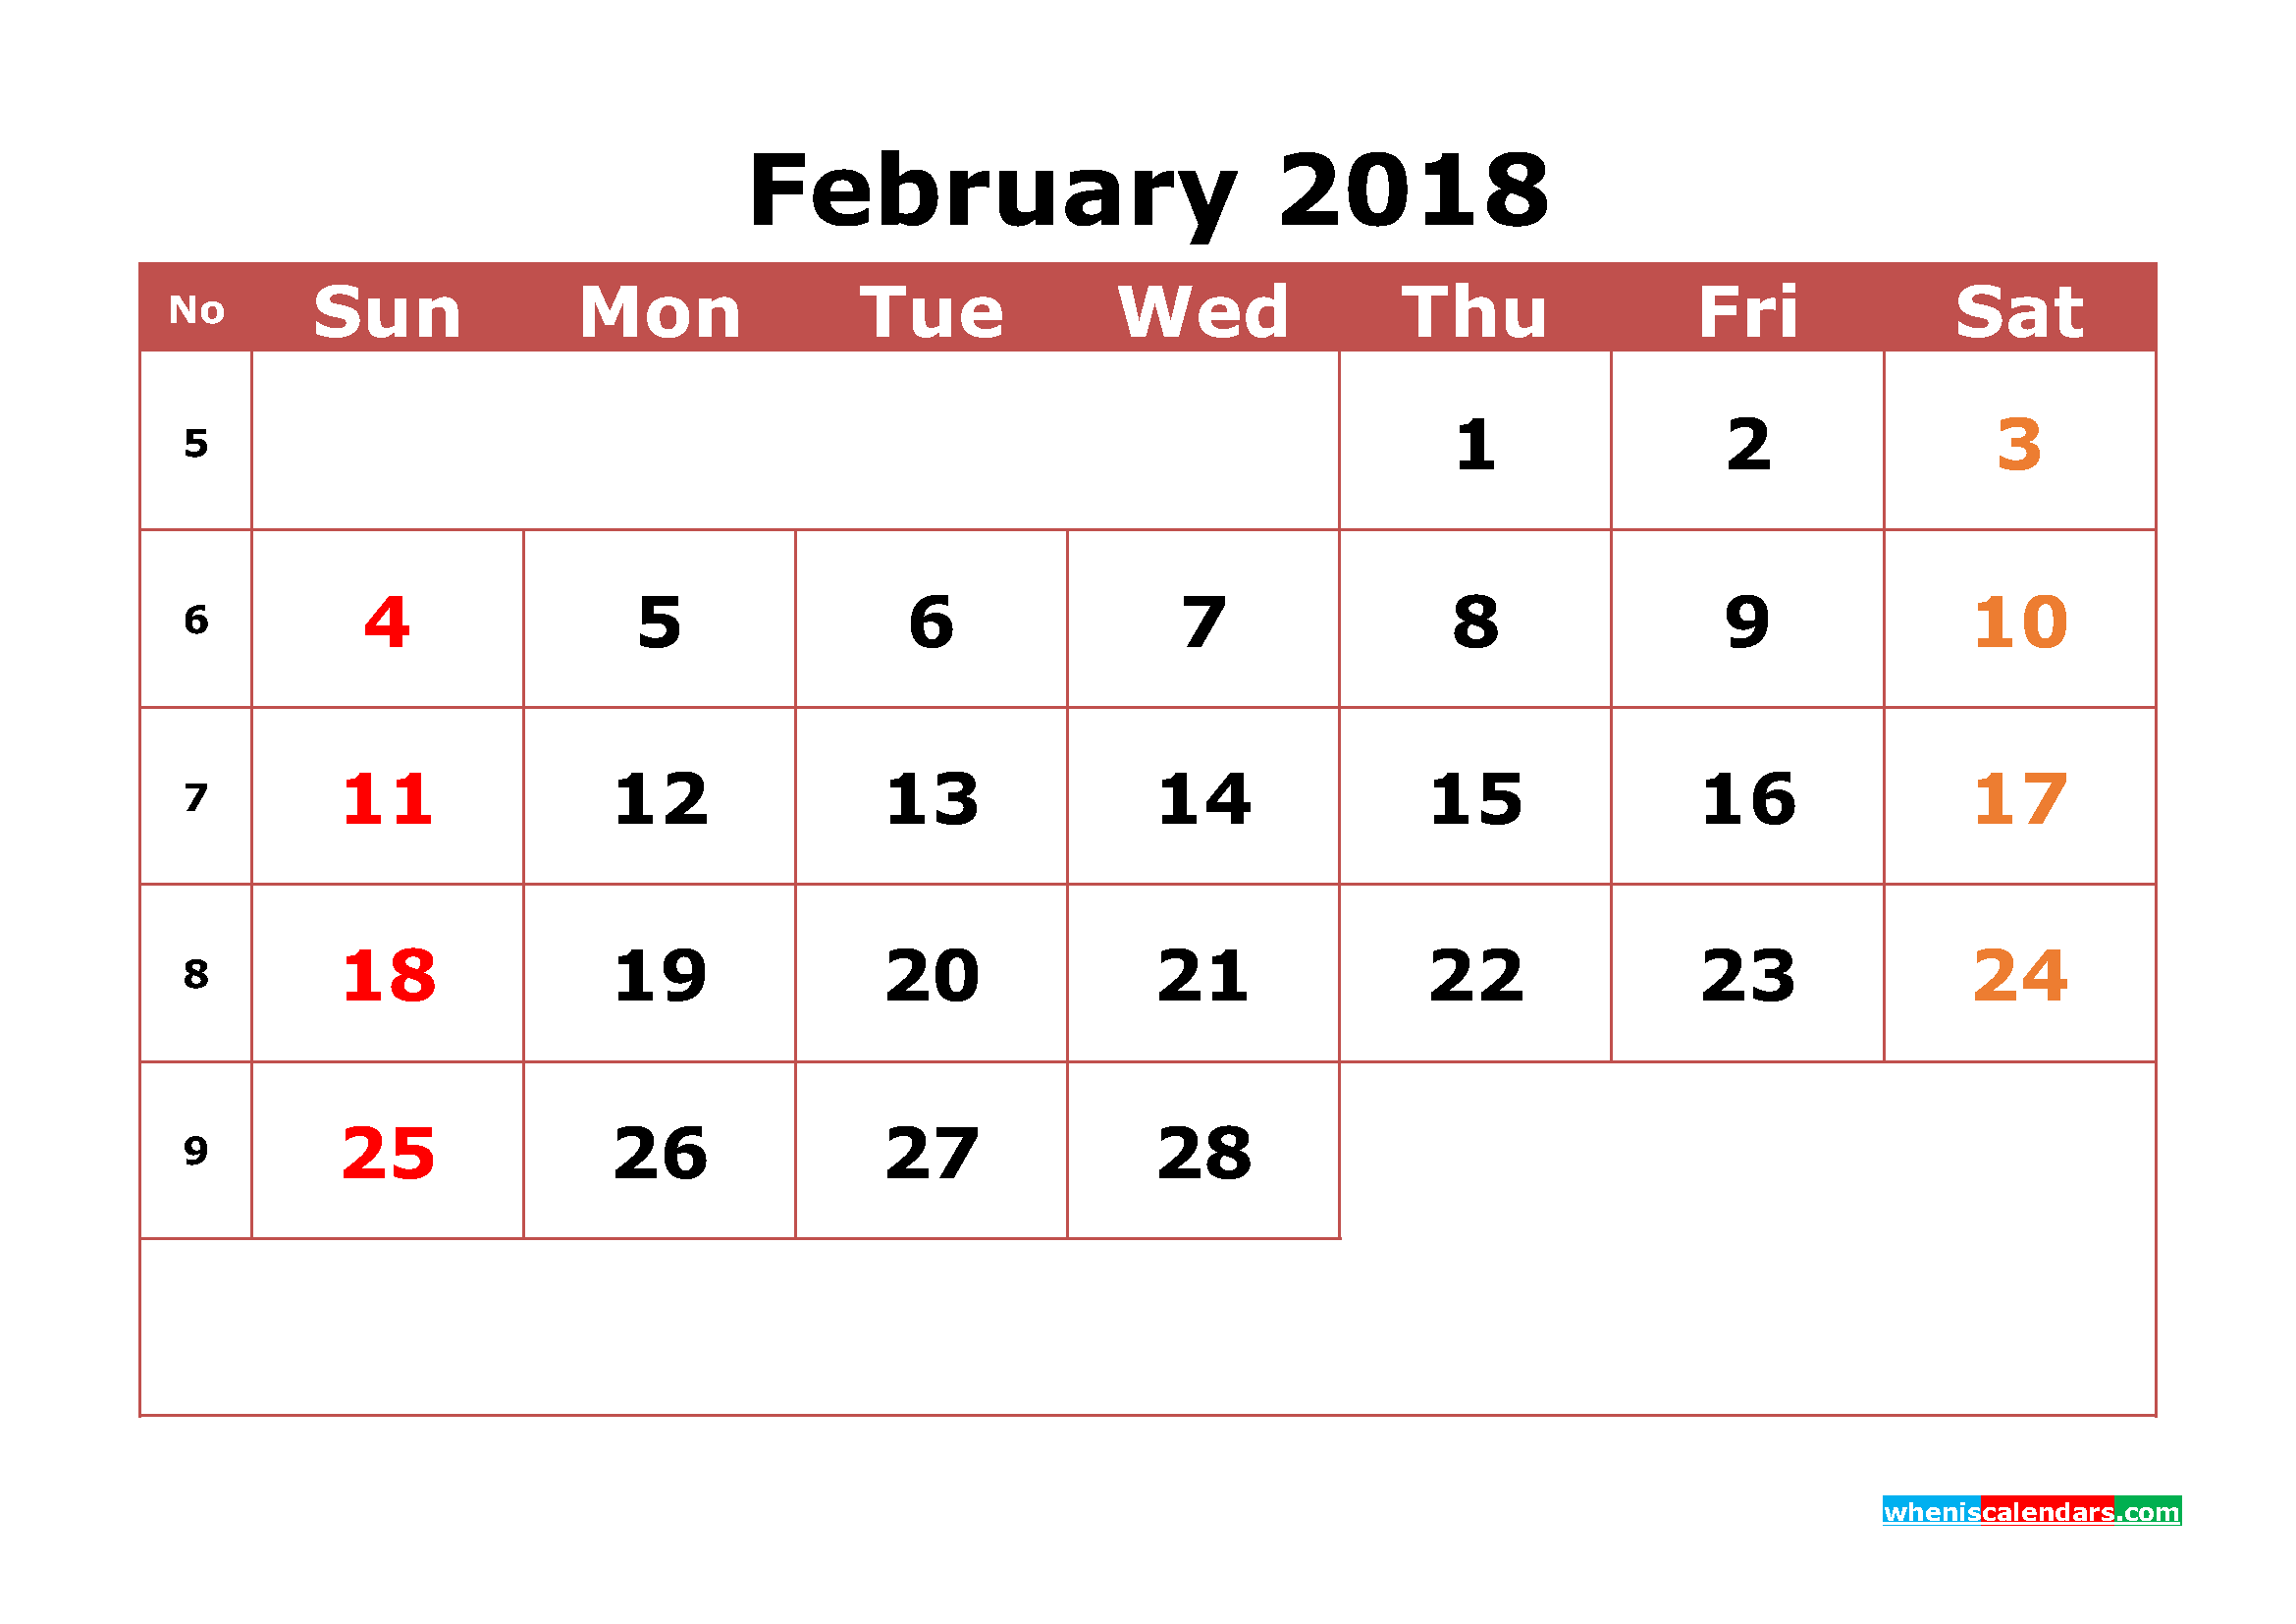 February 2018 Calendar Printable with Week Numbers Image ...